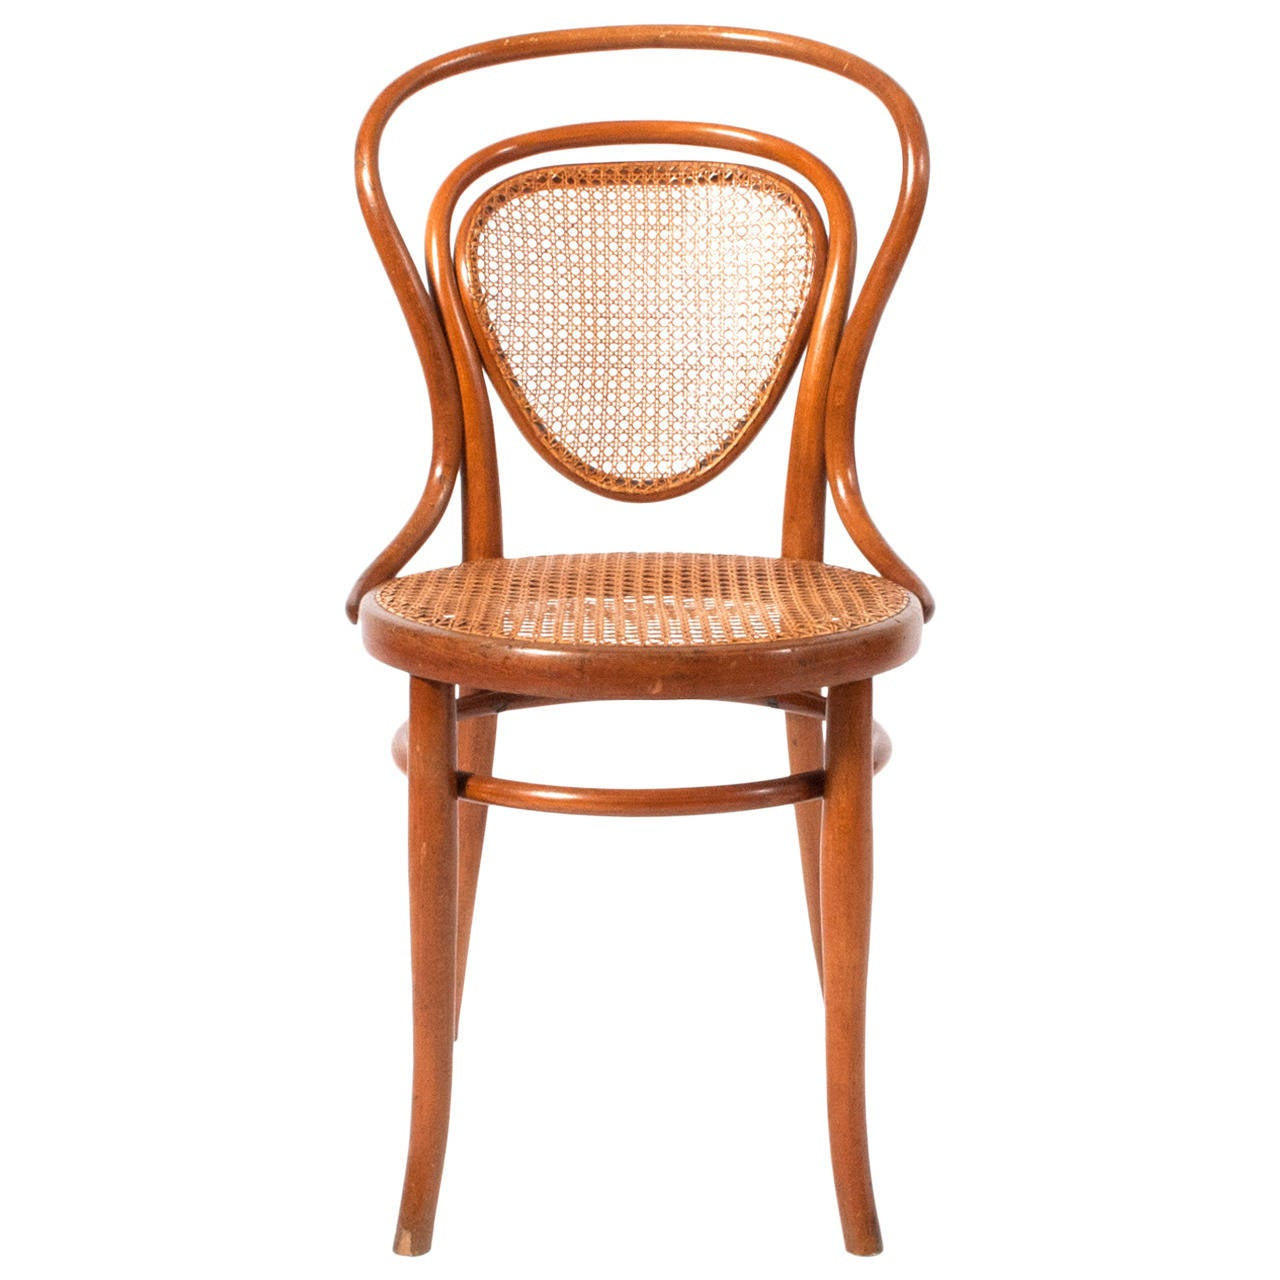 Bent Wood Chairs Early J And J Kohn Bentwood Chair 1900 At 1stdibs